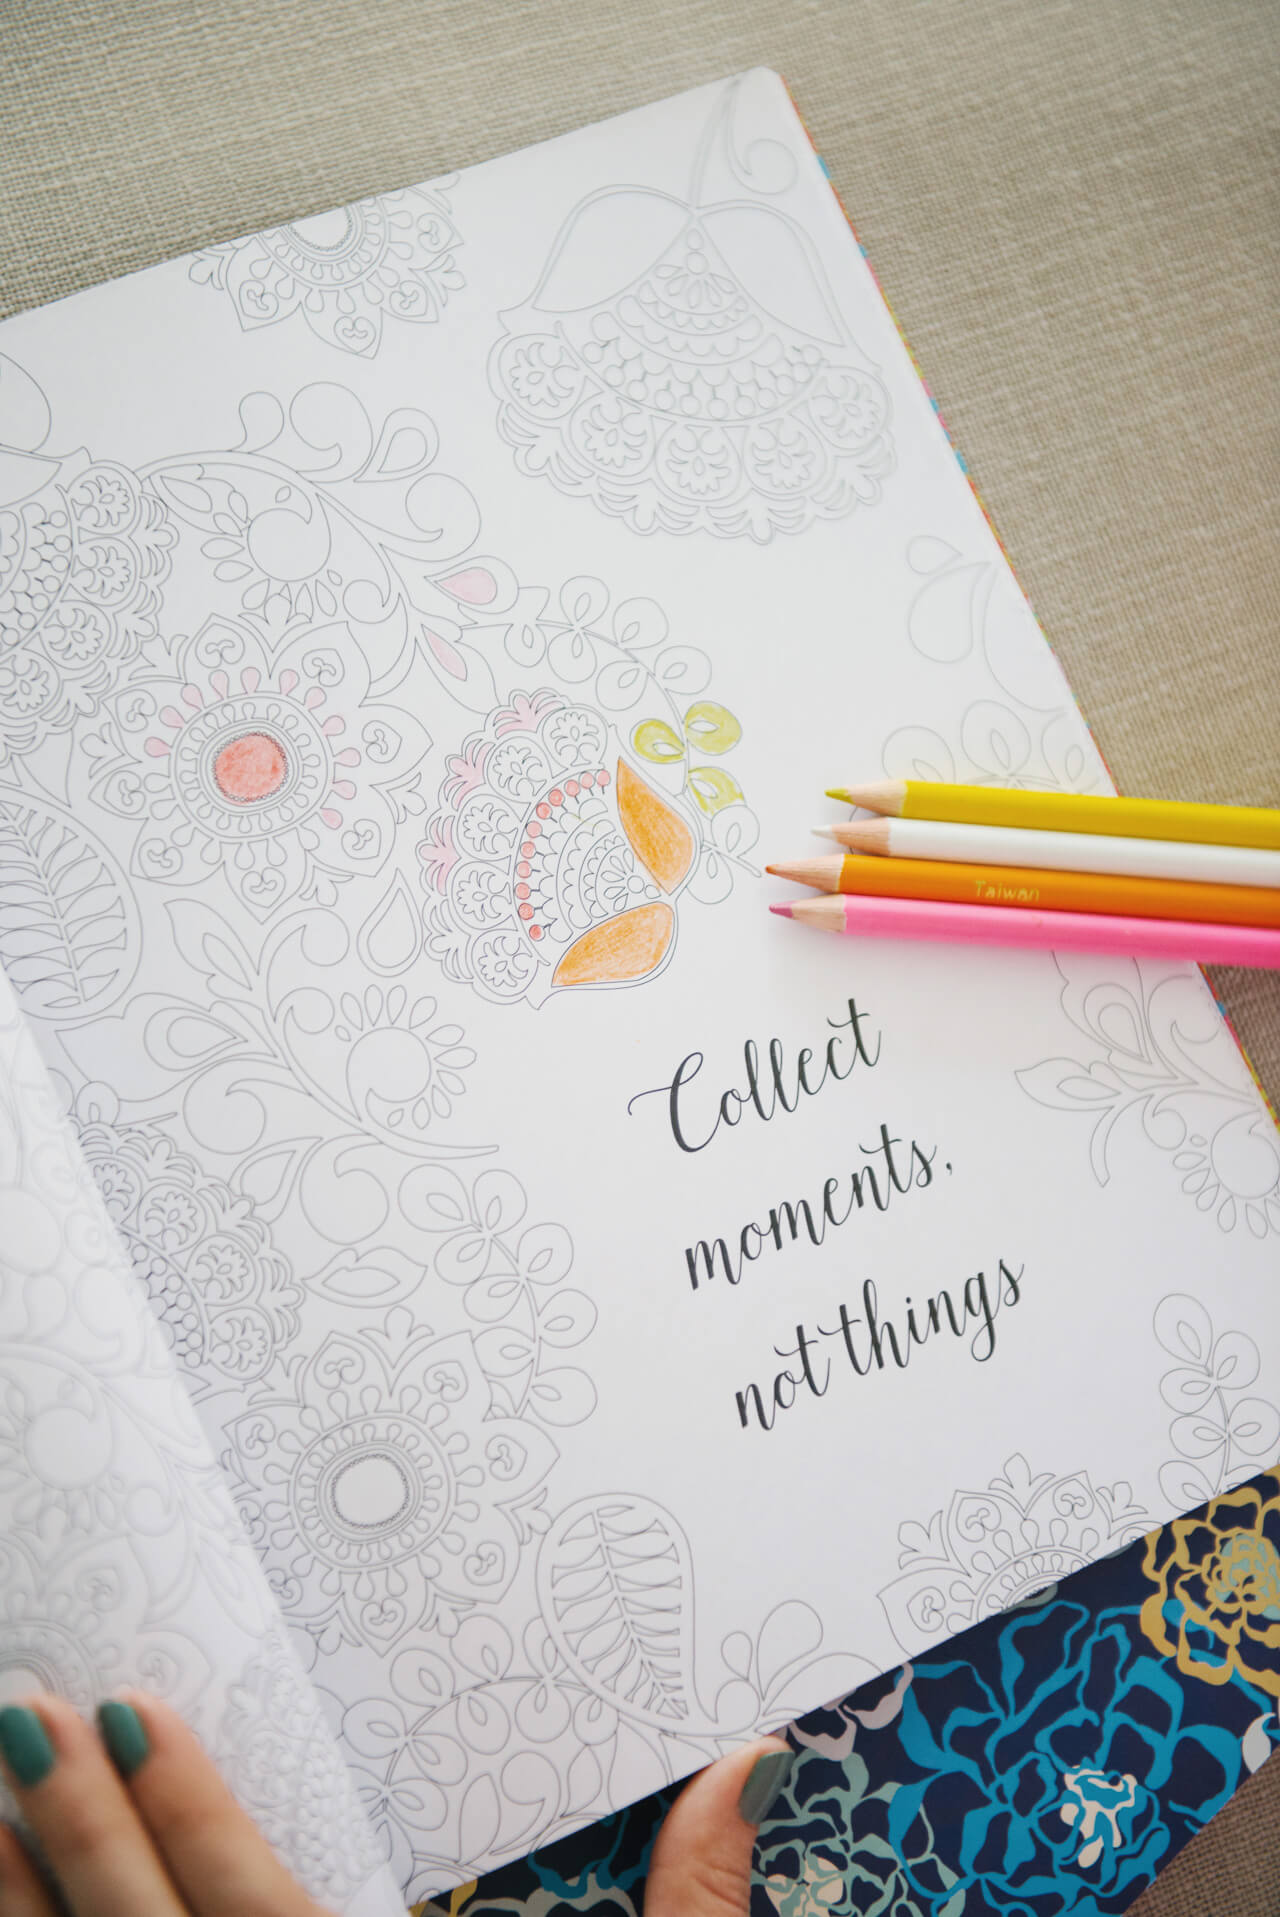 collect moments not things coloring book from vera bradley